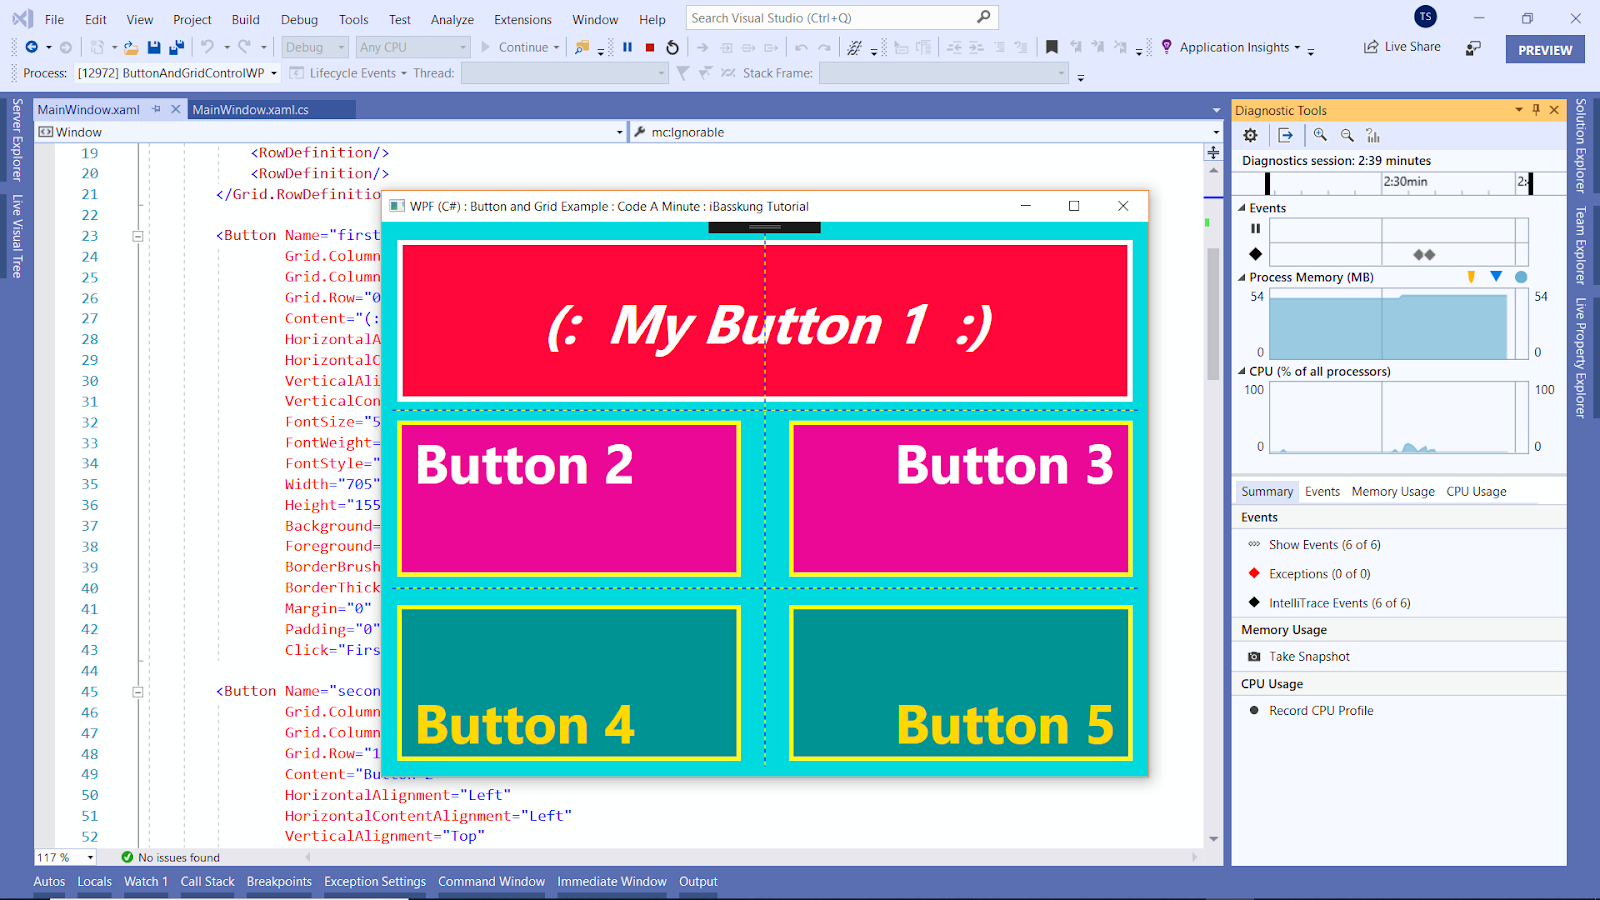 Visual Studio 2019 (WPF C# Source Code & XAML) Using the